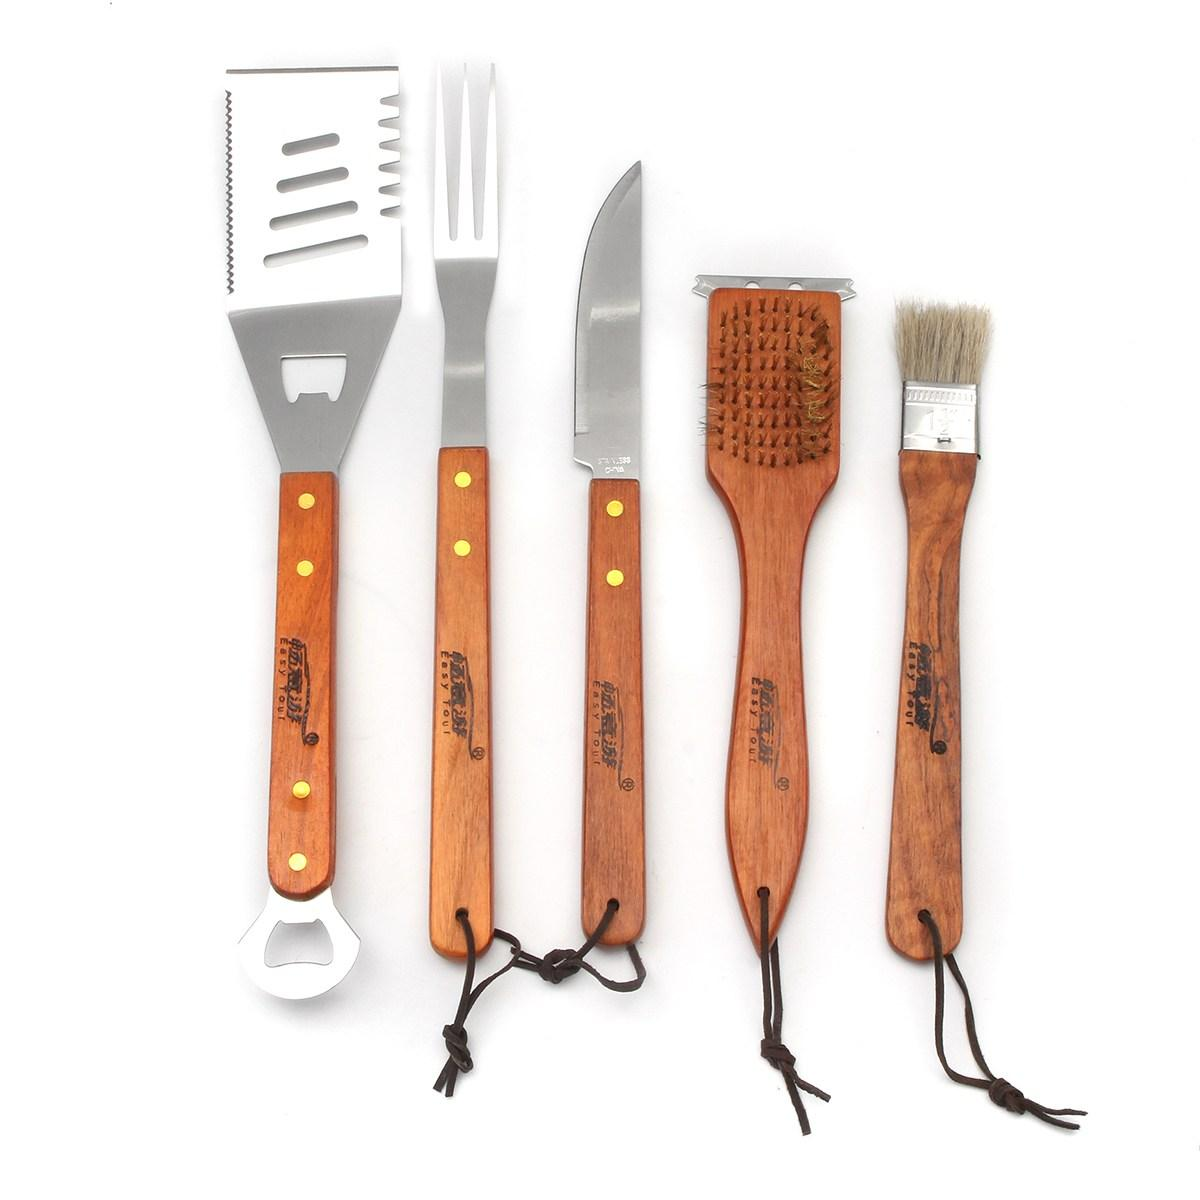 2020 Camping BBQ Tools Set Stainless Steel Cooking ...